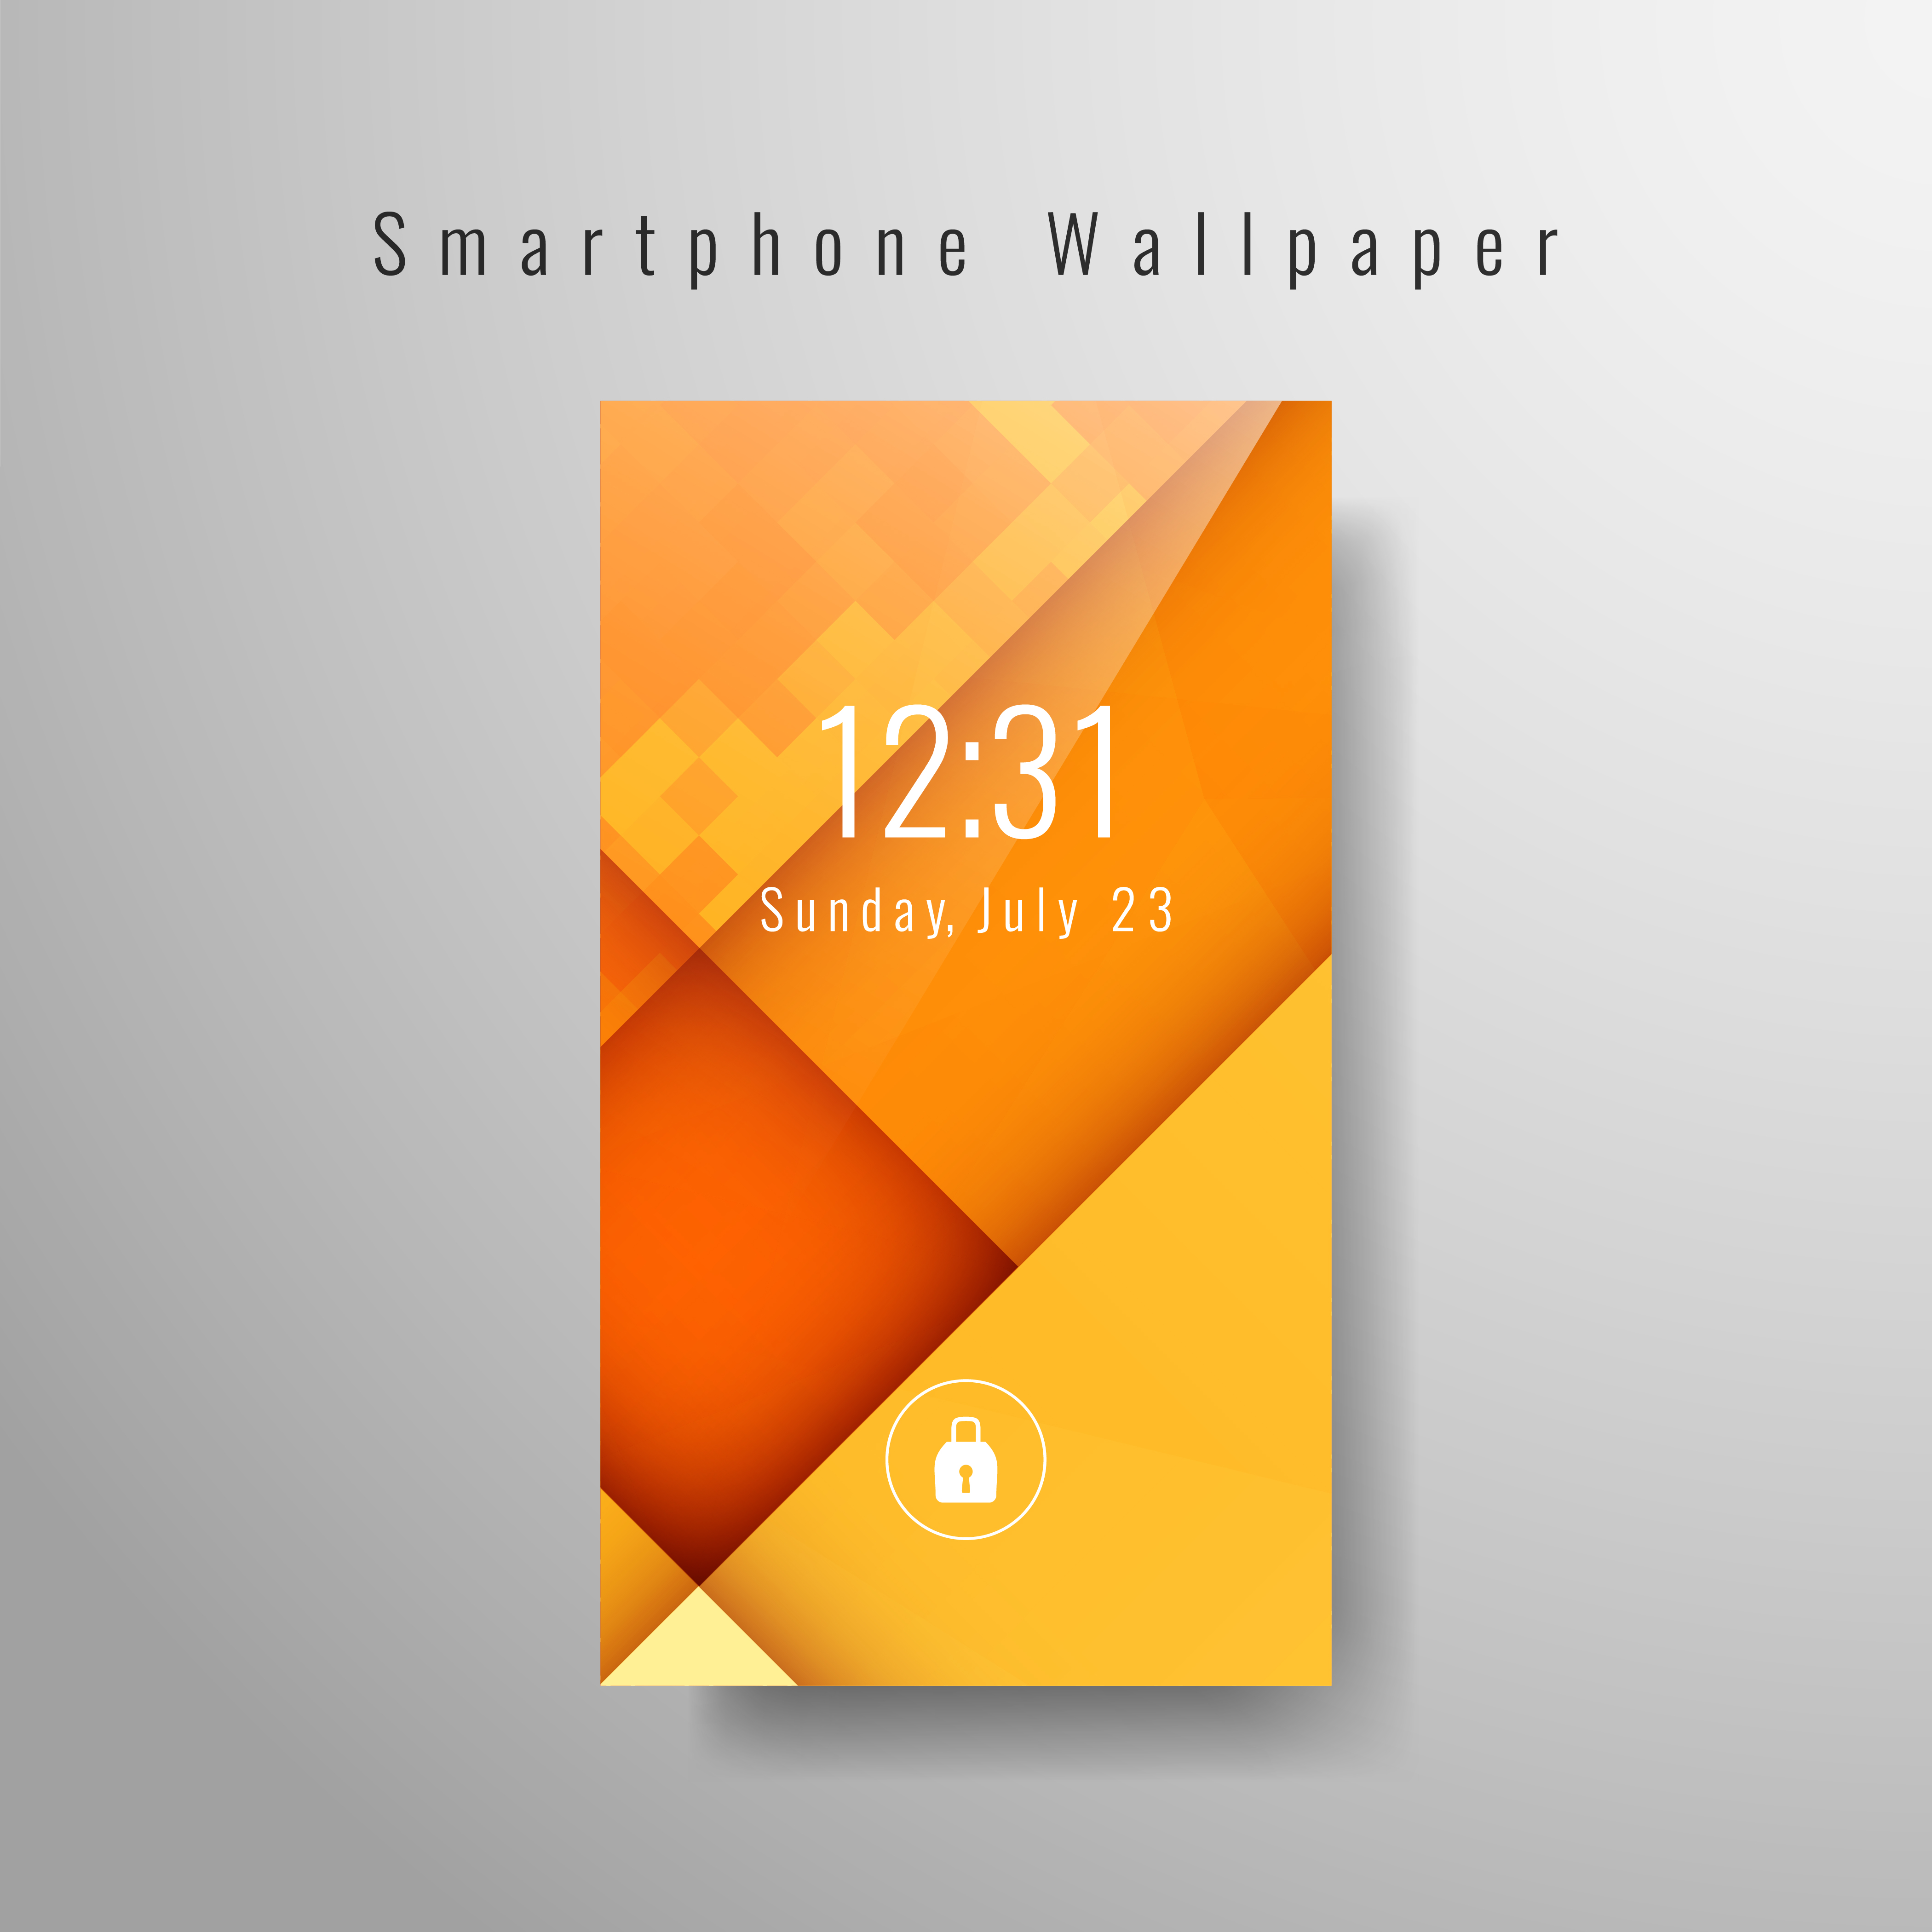 Abstract Stylish Smartphone Wallpaper Template